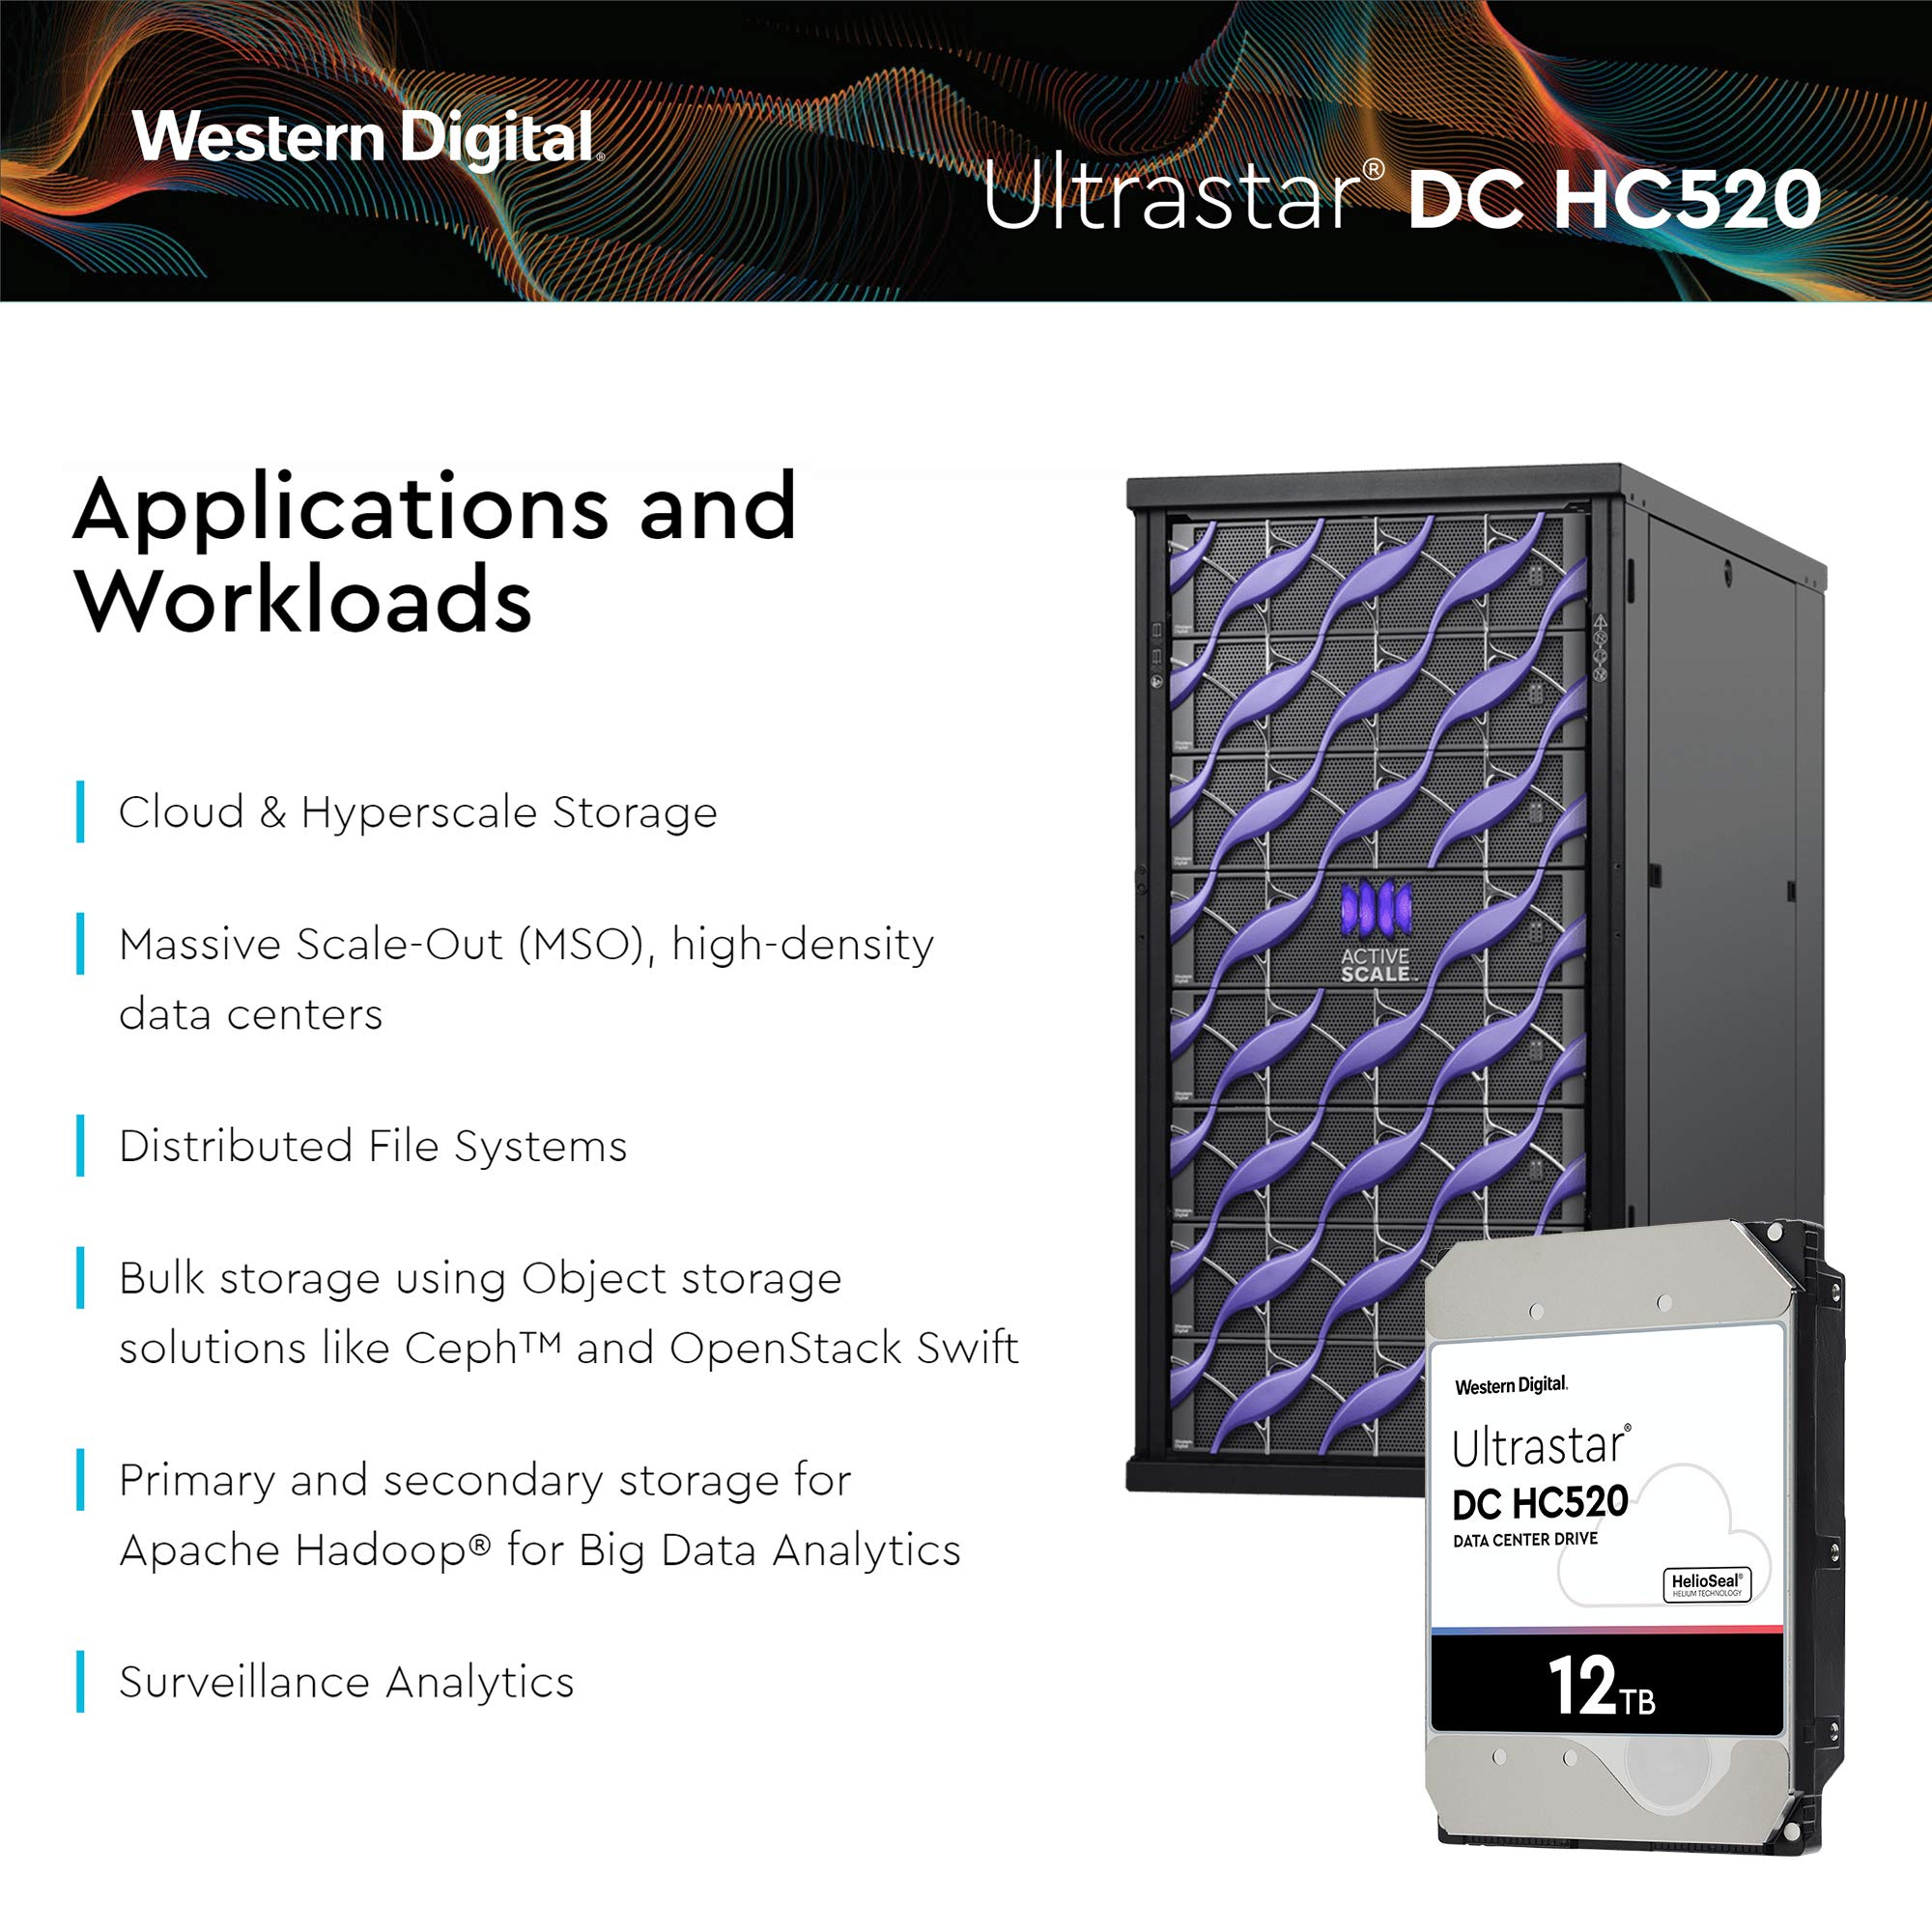 HGST - WD Ultrastar DC HC520 HDD | HUH721212ALE600 | 12TB 7.2K SATA 6Gb/s 256MB Cache 3.5-Inch | ISE 512e | 0F30144 | Helium Data Center Internal Hard Disk Drive by HGST (Image #5)